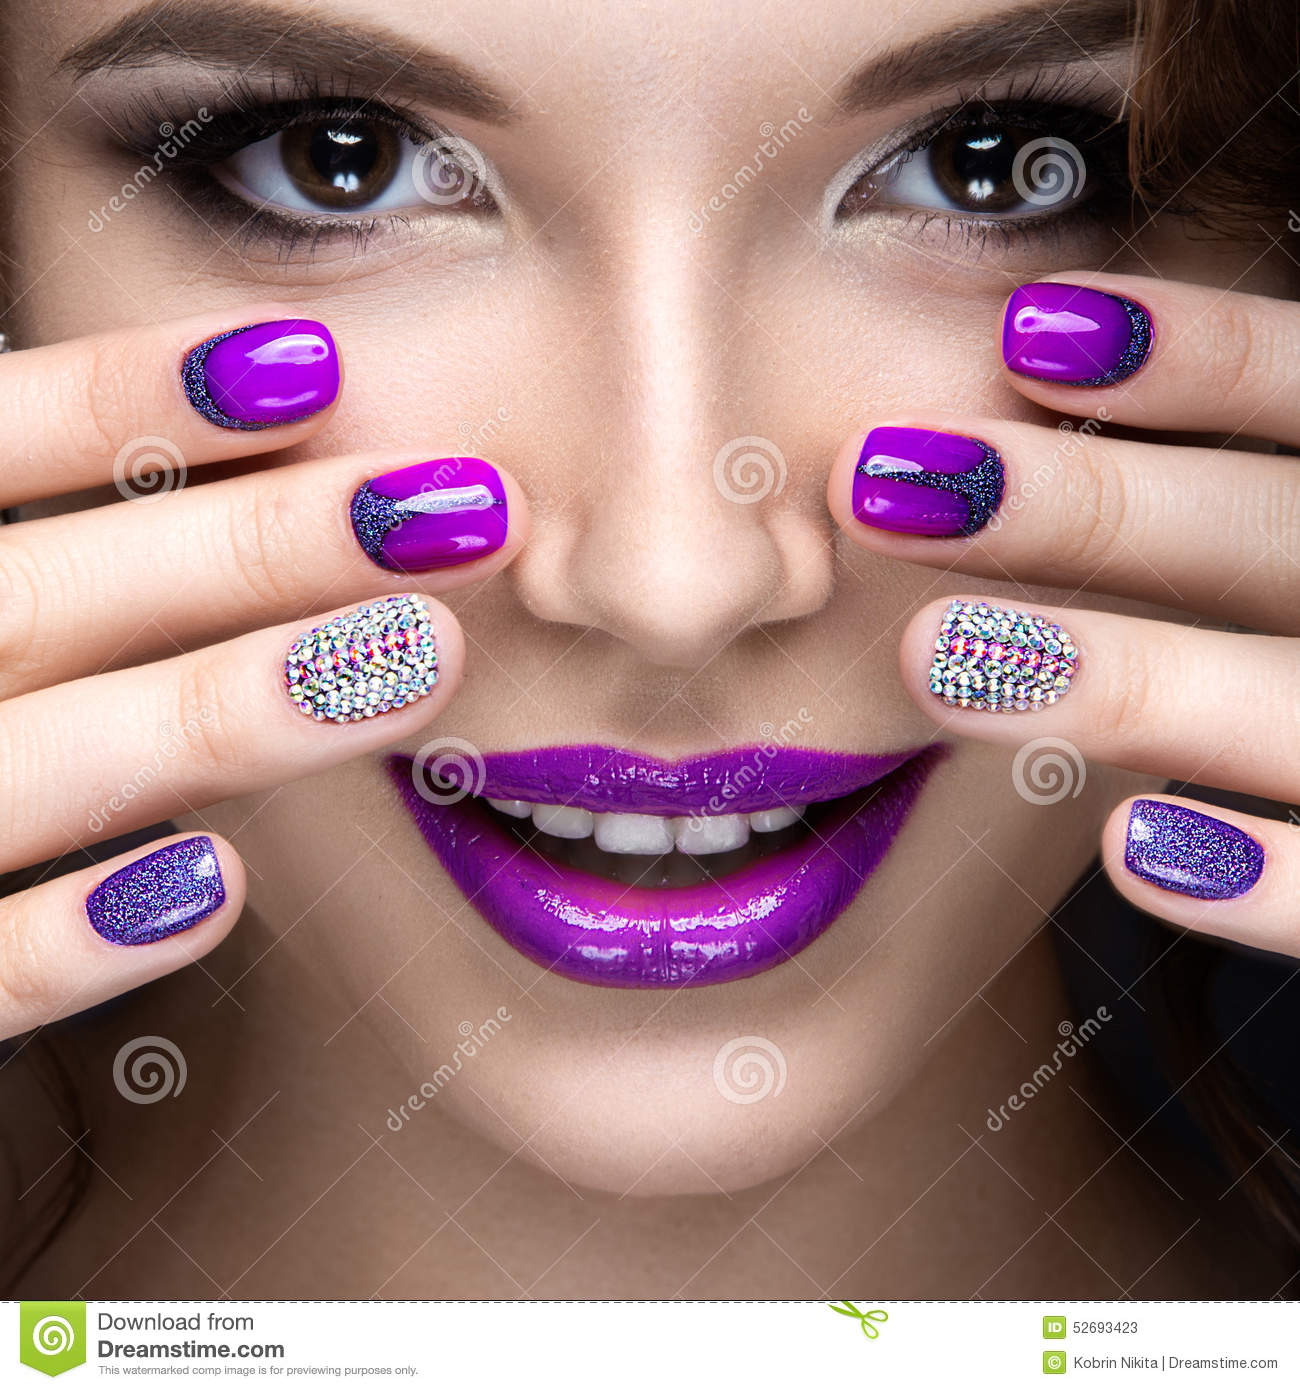 beautiful girl with a bright evening make up and purple manicure with rhinestones nail design. Black Bedroom Furniture Sets. Home Design Ideas